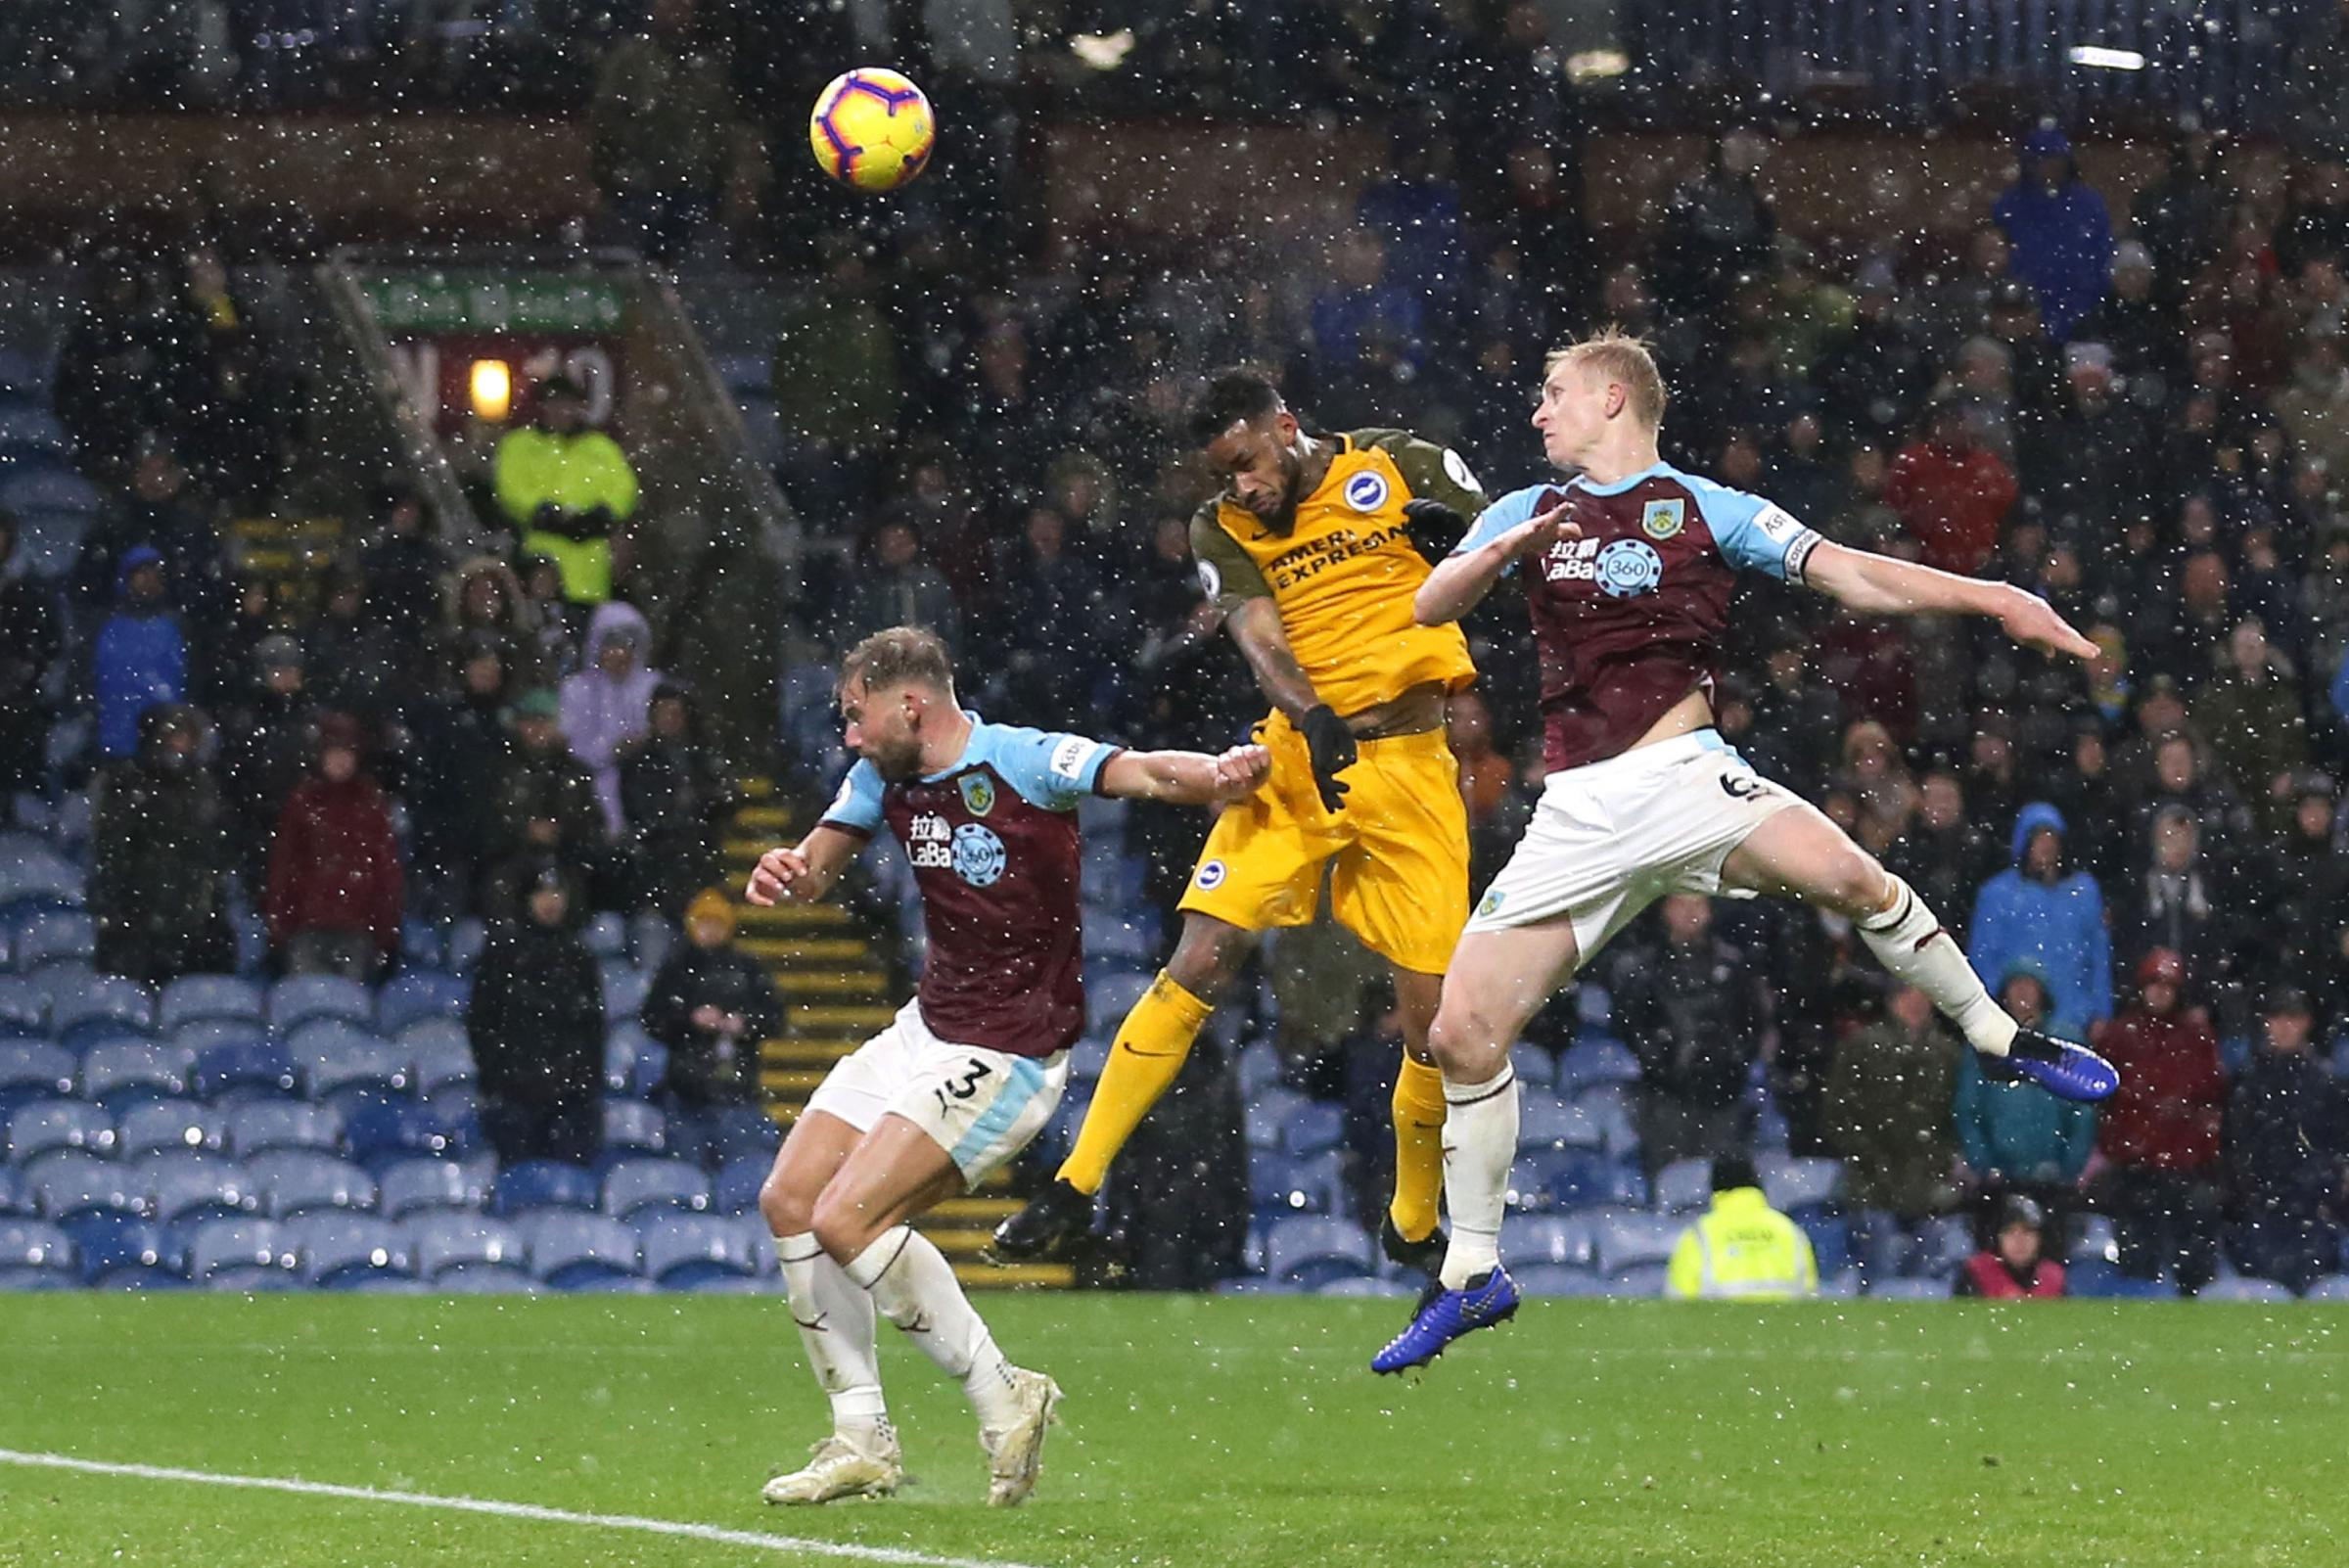 Locadia misses big chance to make impact for Albion